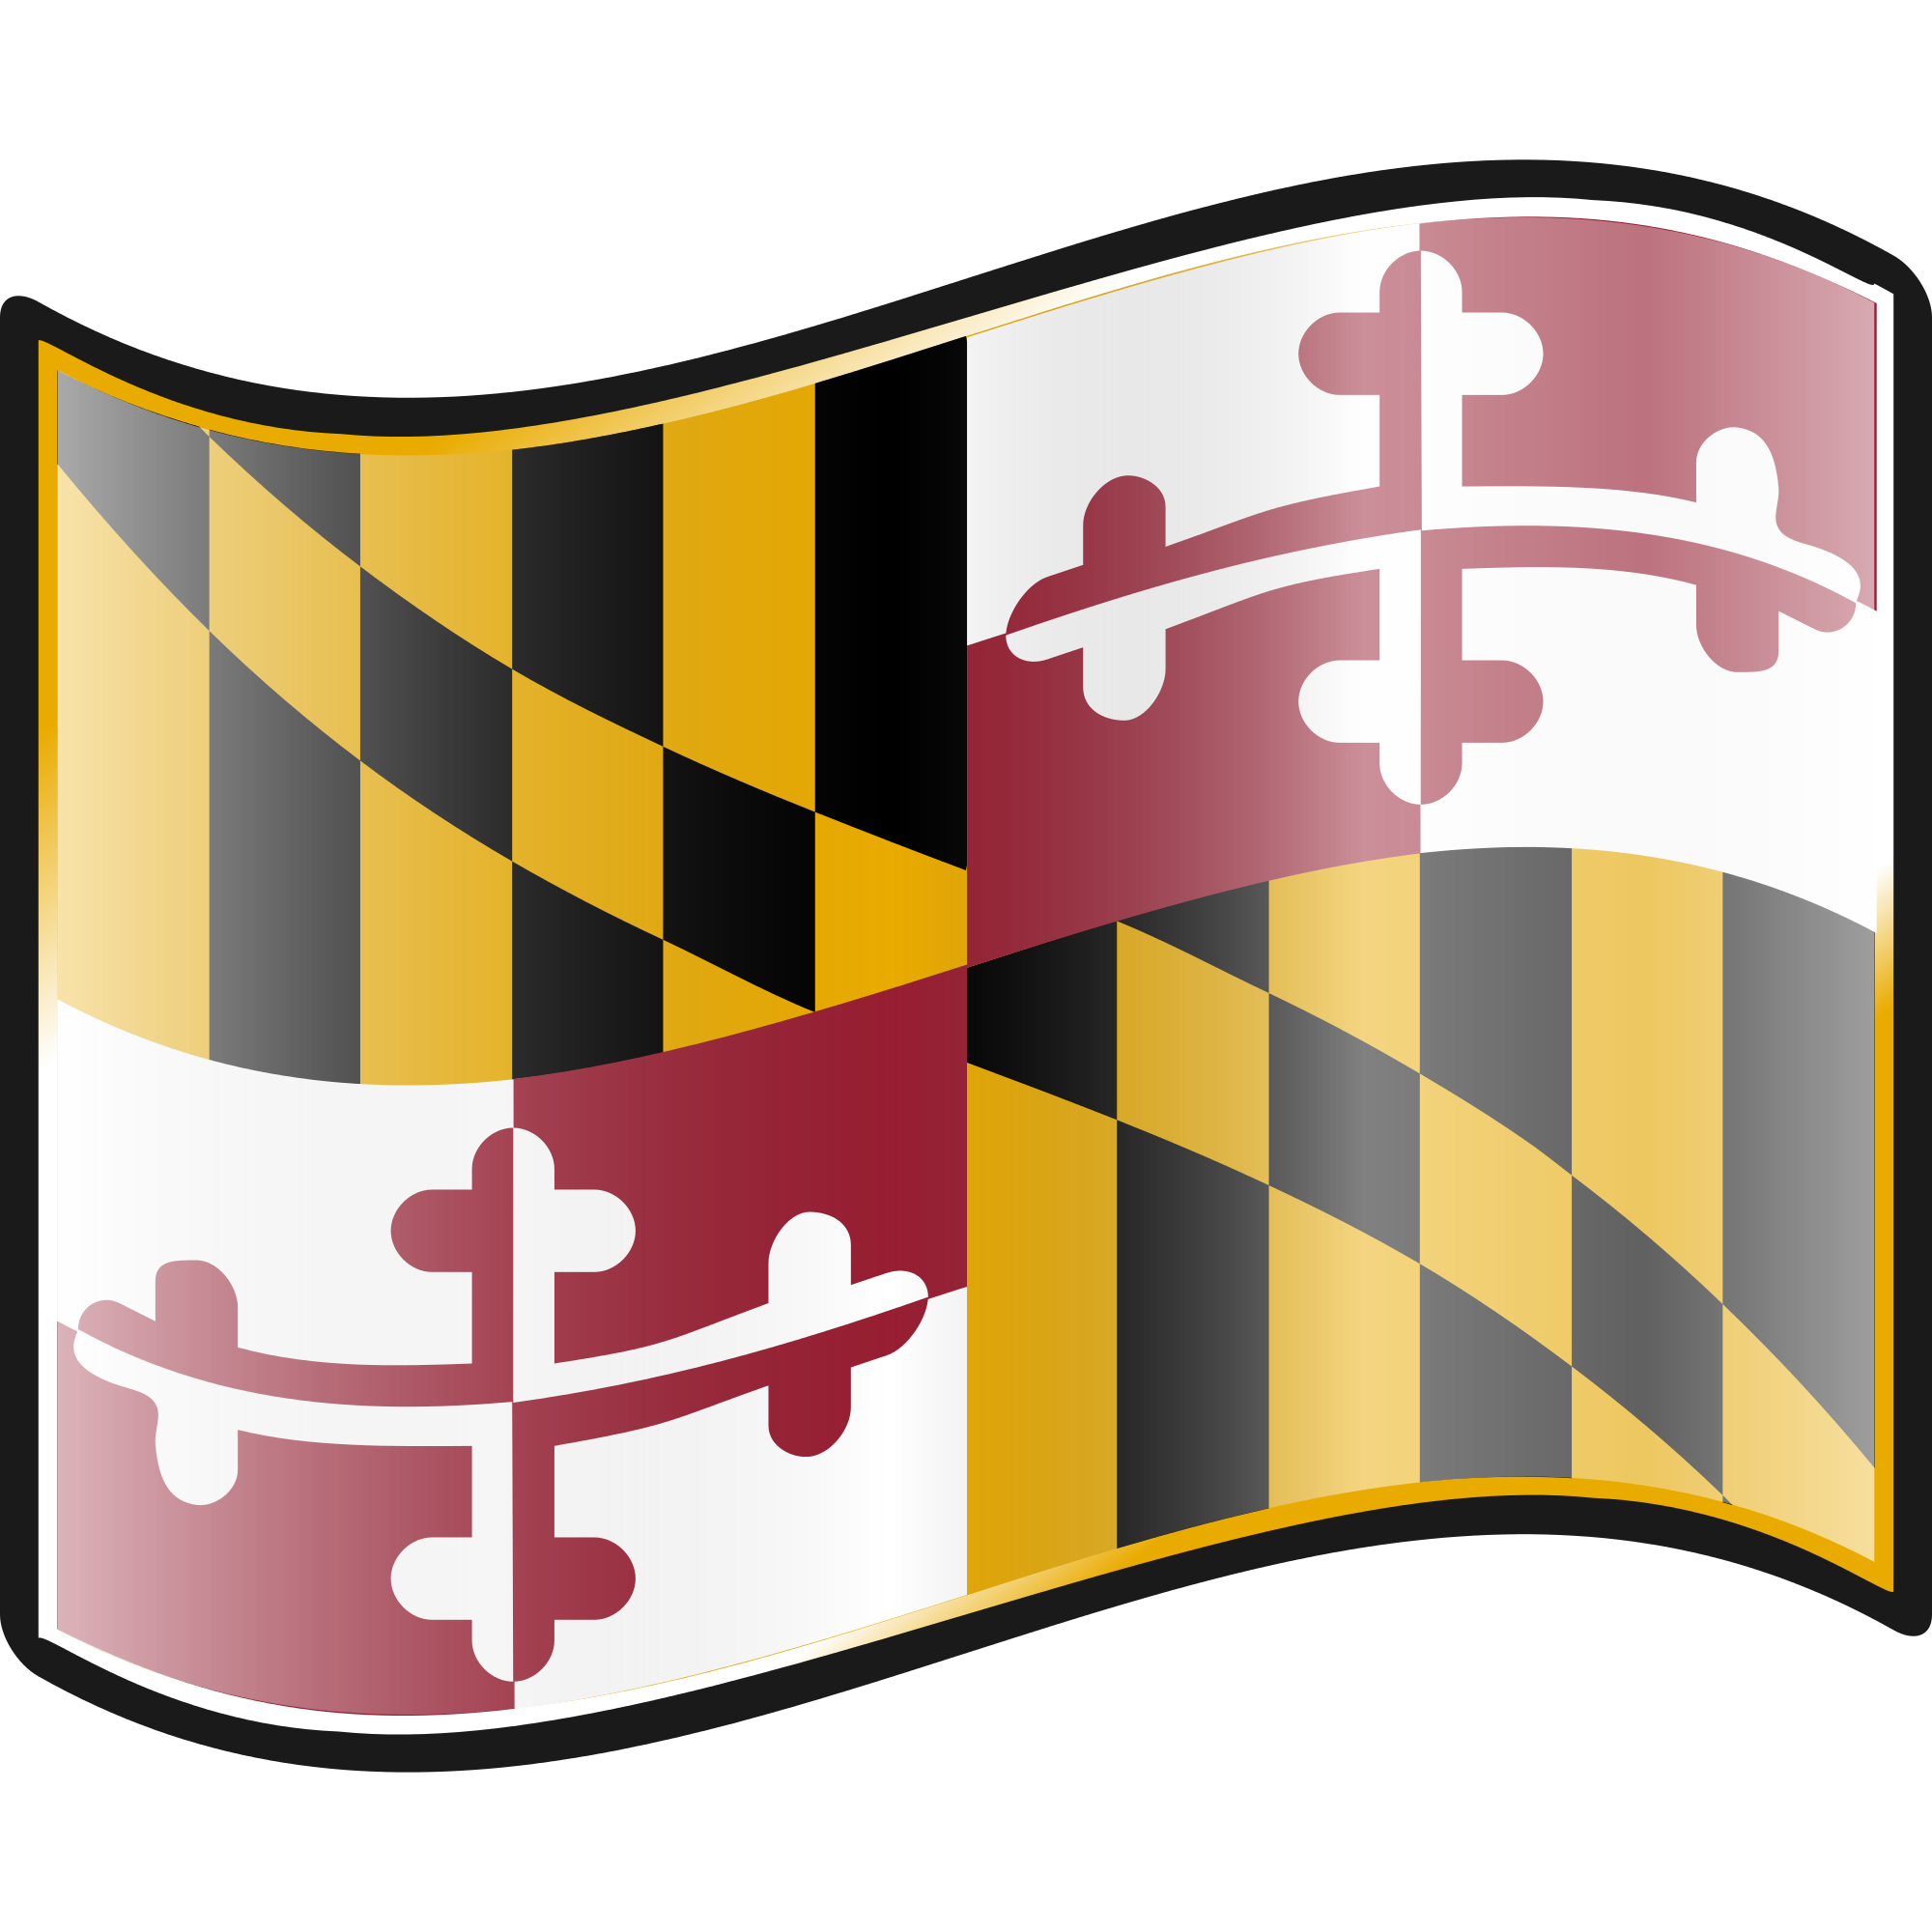 Slavery clipart servitude. Lumifish timeline maryland attempted